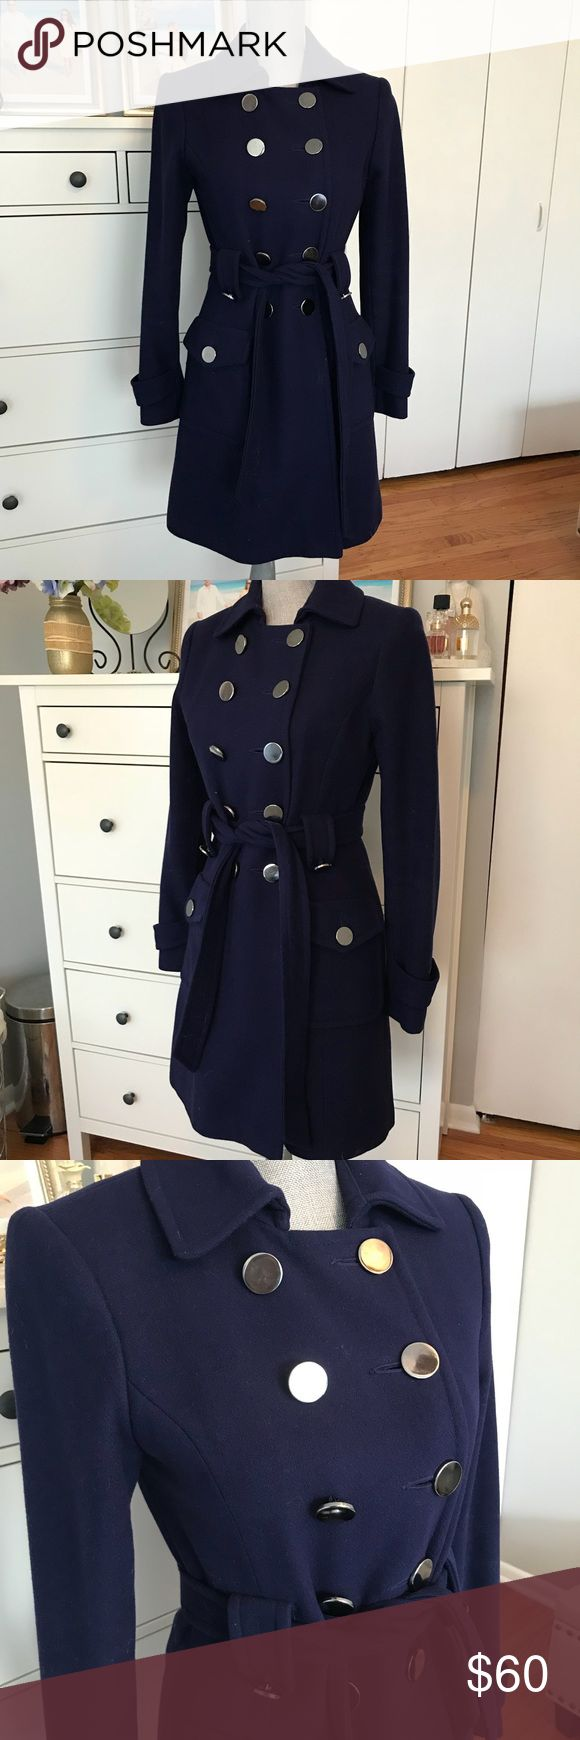 Oasis royal blue coat Beautiful feminine coat. Kate Middelton-like. Size XS. Can fit size S as well. Gorgeous metallic silver buttons. Oasis Jackets & Coats